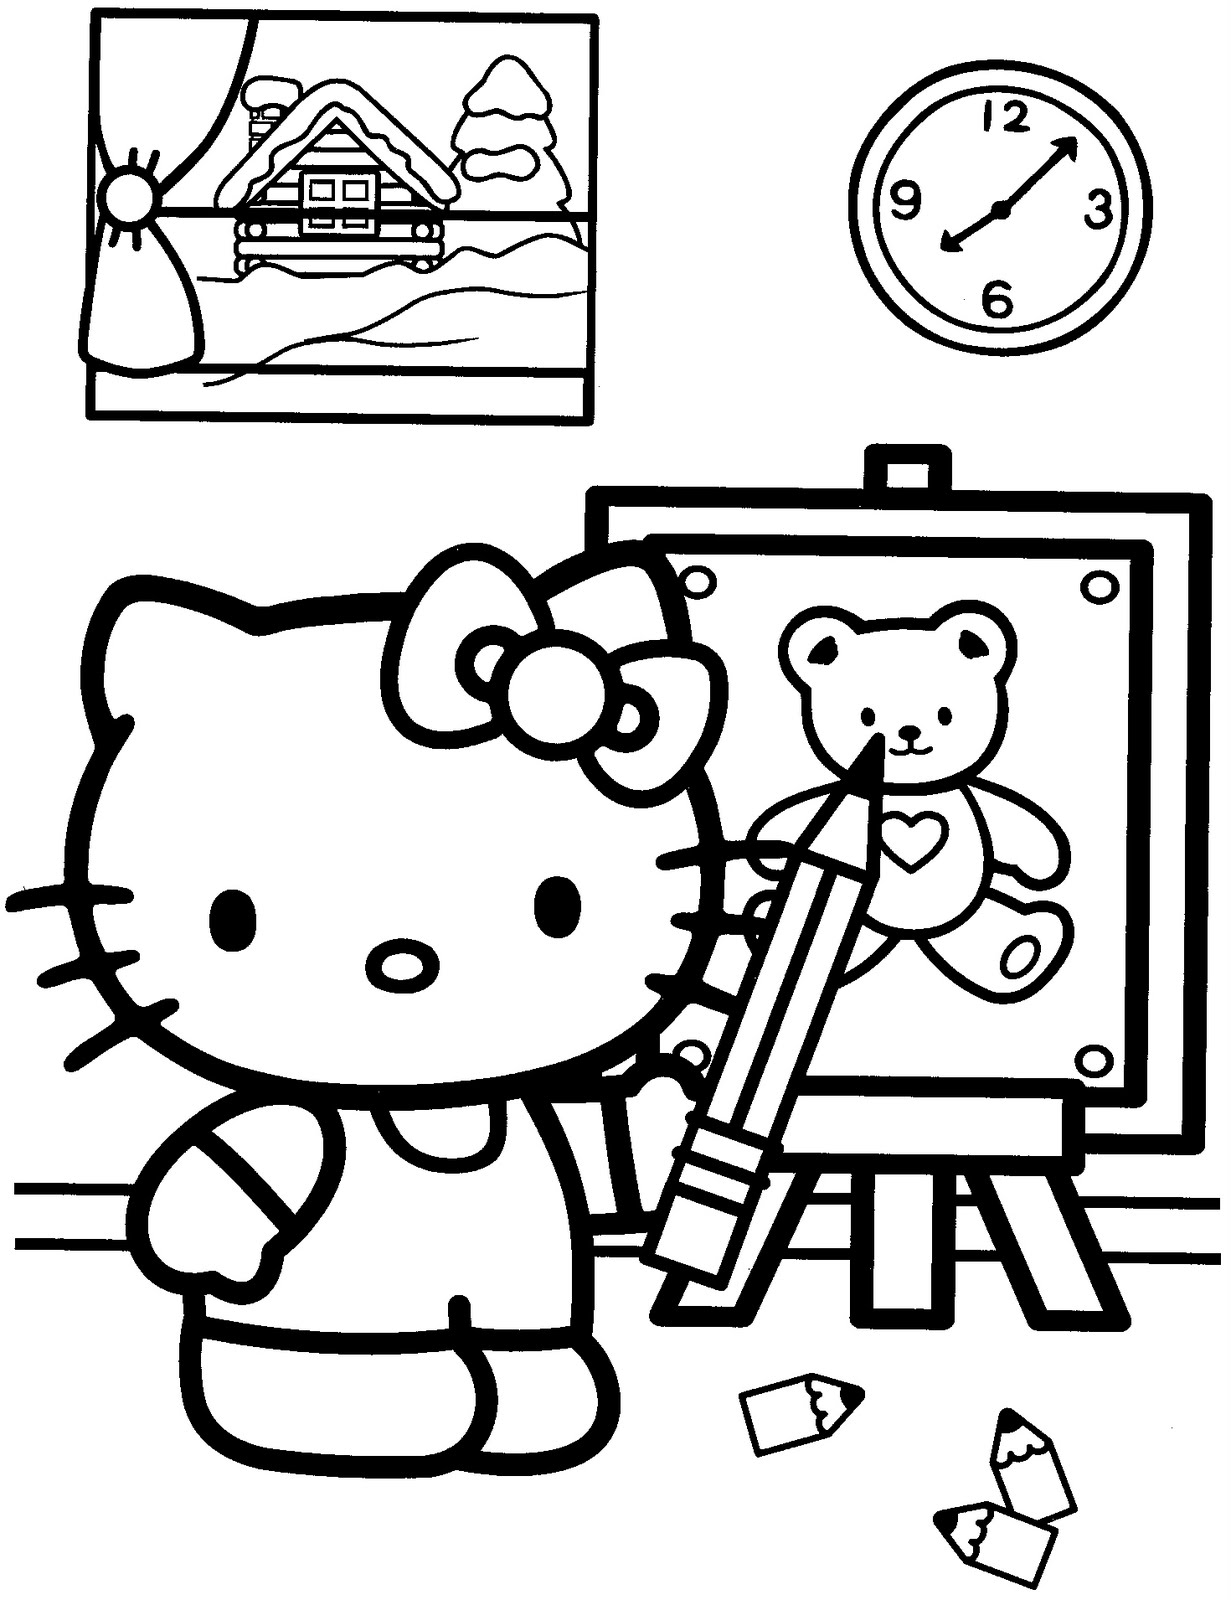 hello kitty coloring pages wallpapers for ipad   Hello Kitty Coloring Pages 02 of 15 - Drawing - HD ...